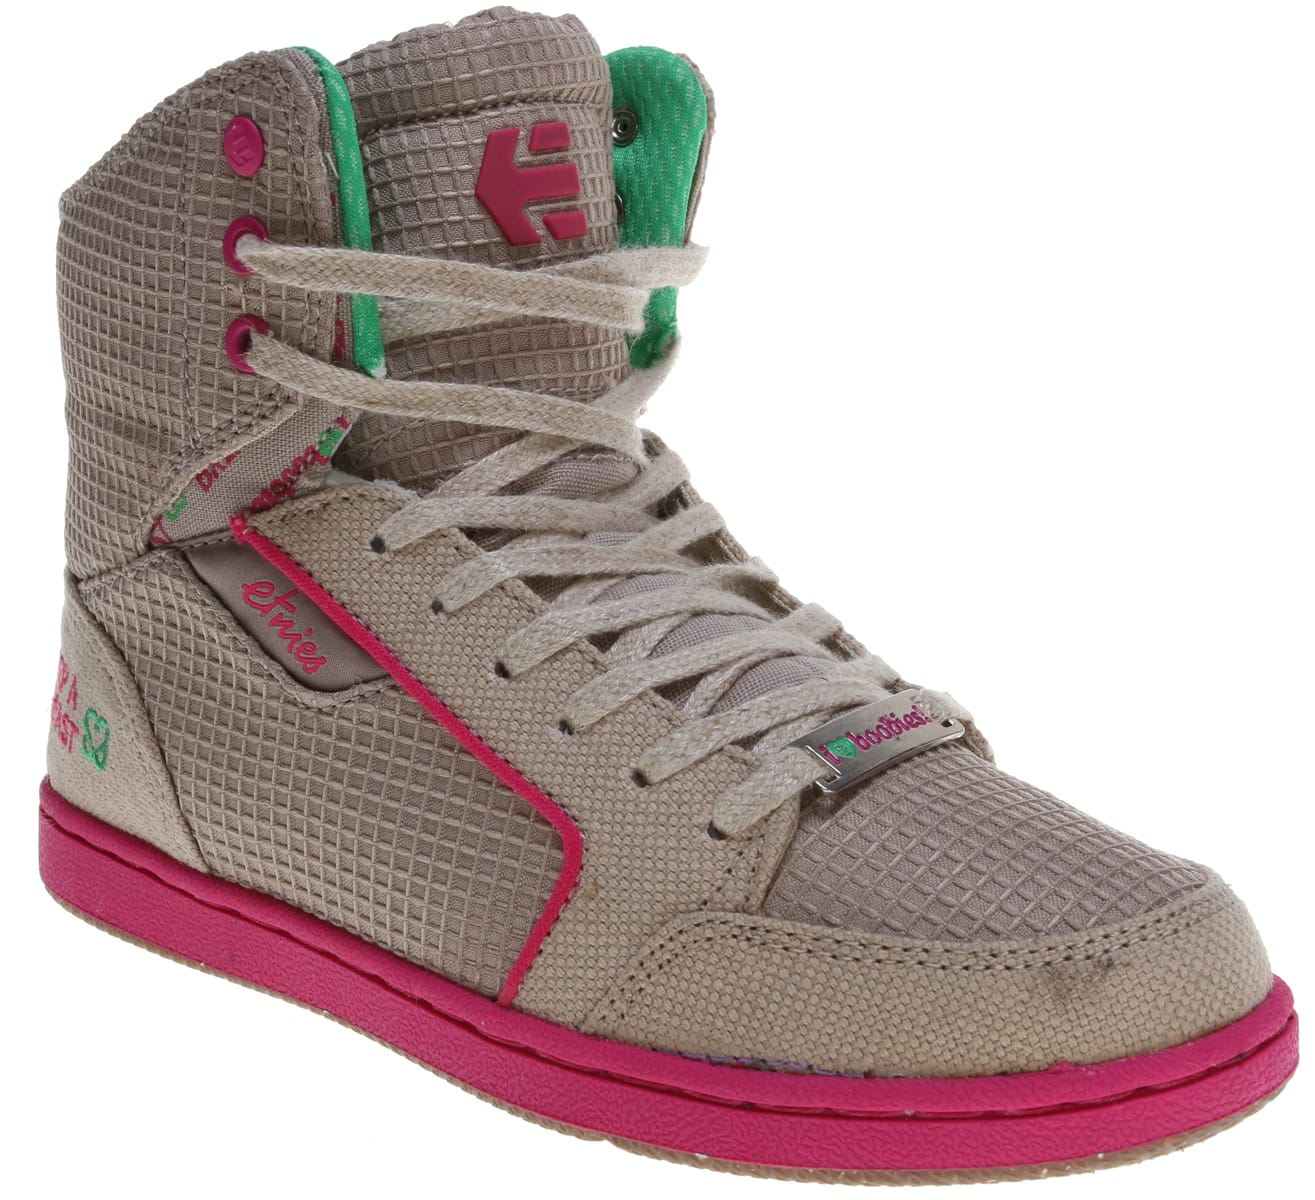 on sale etnies woozy boots womens up to 60